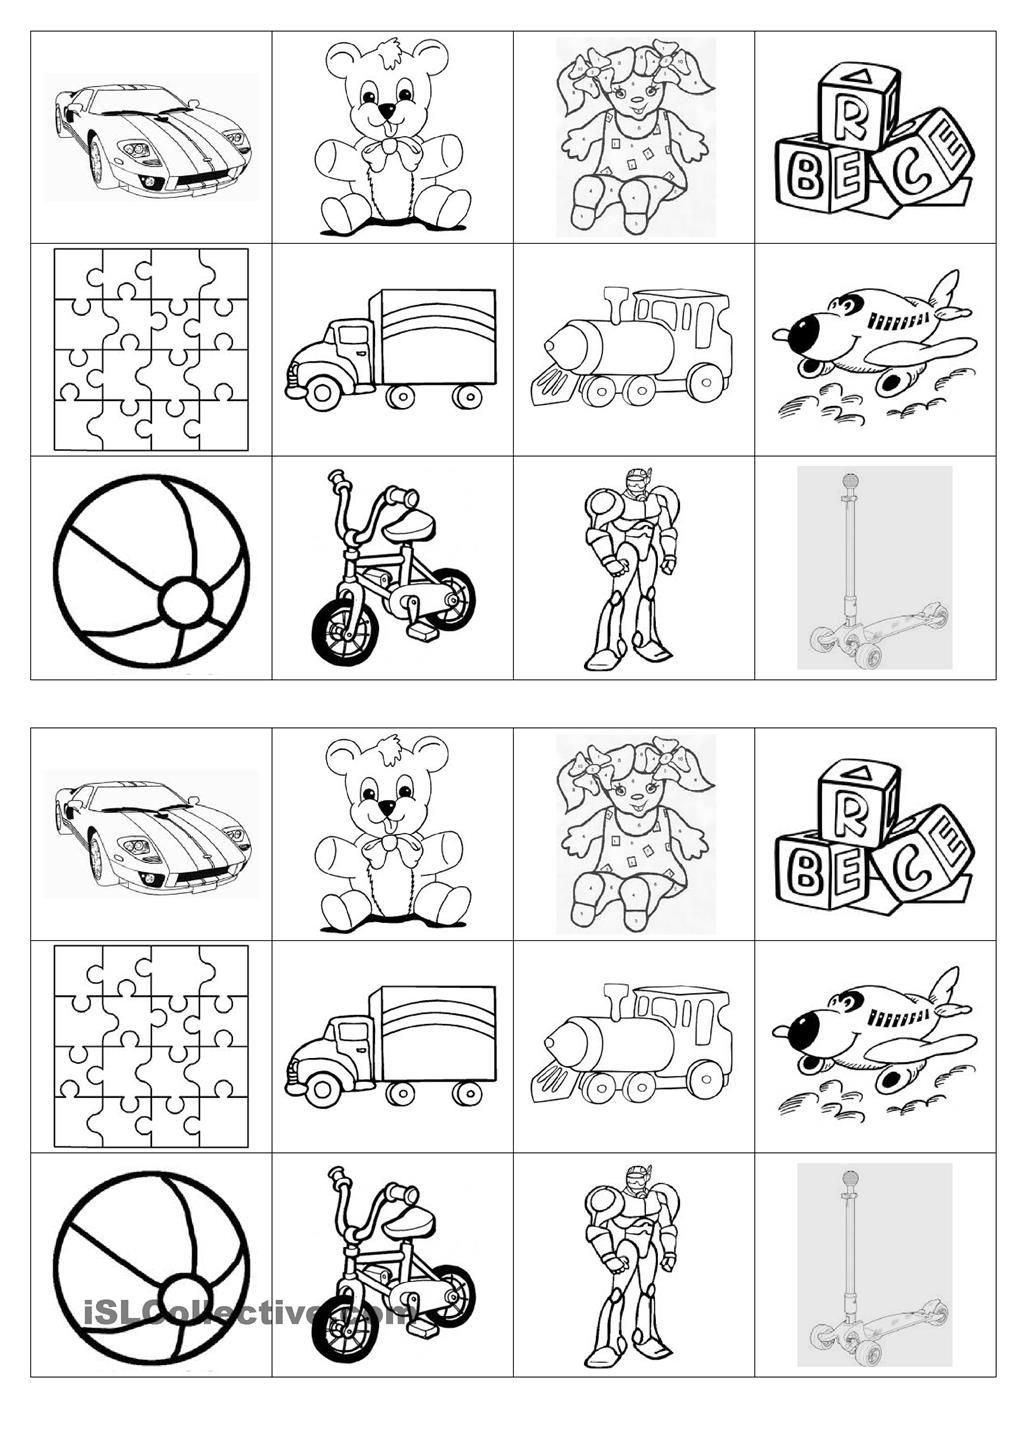 Memory Exercises for Adults Printable Memory Game On toys